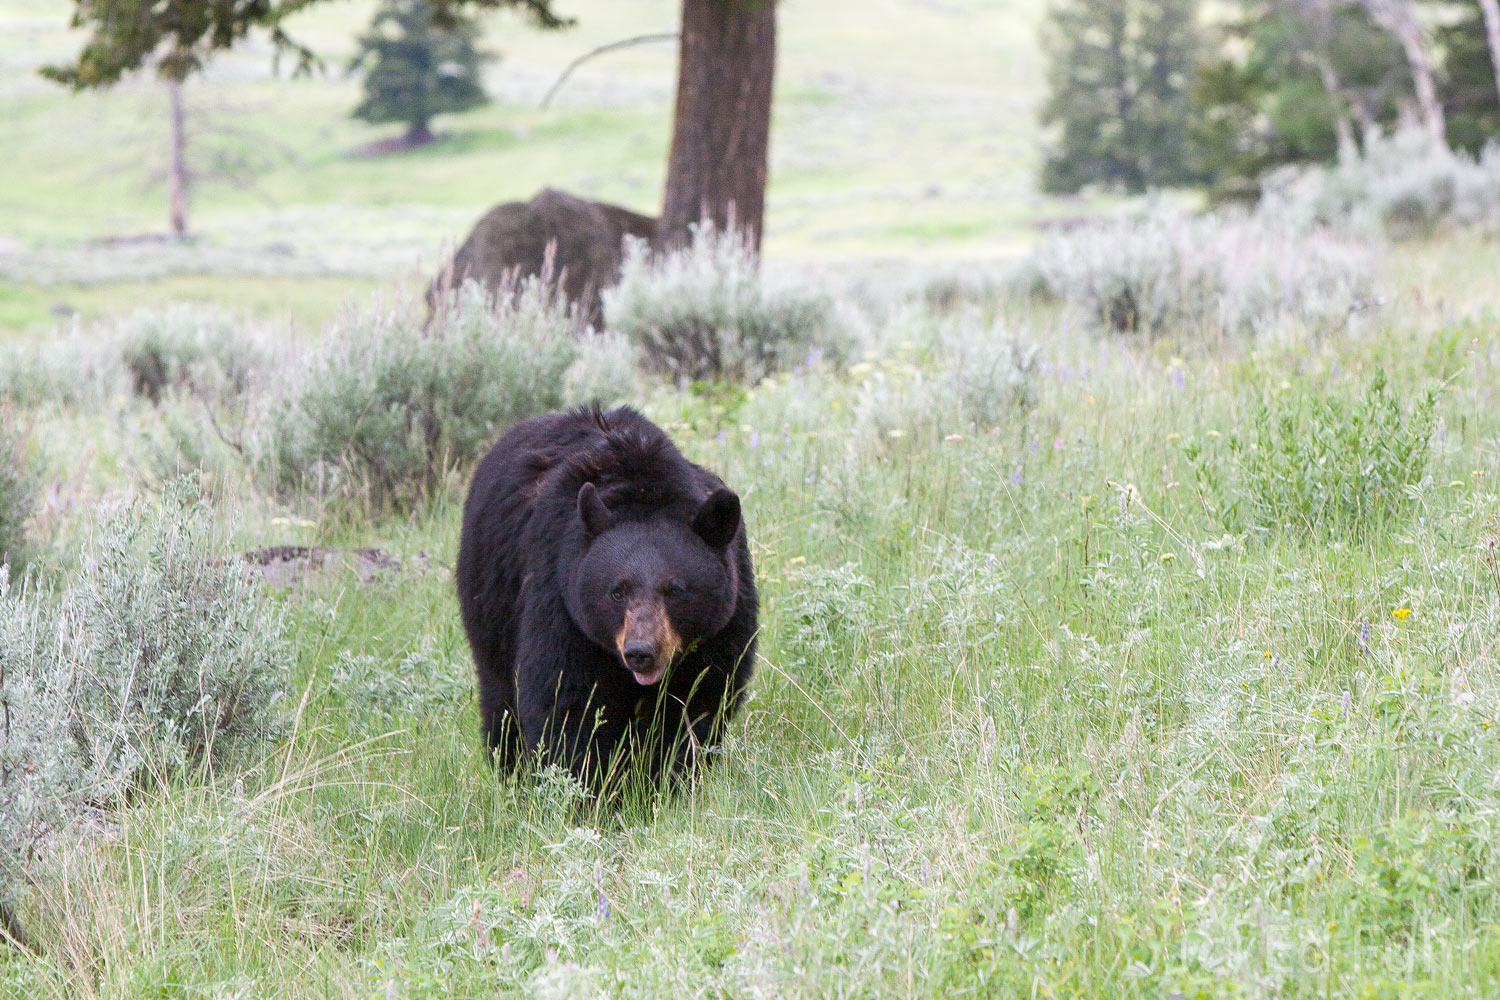 The classic Yellowstone scene:  a large bear meanders through the rolling hills of Yellowstone.